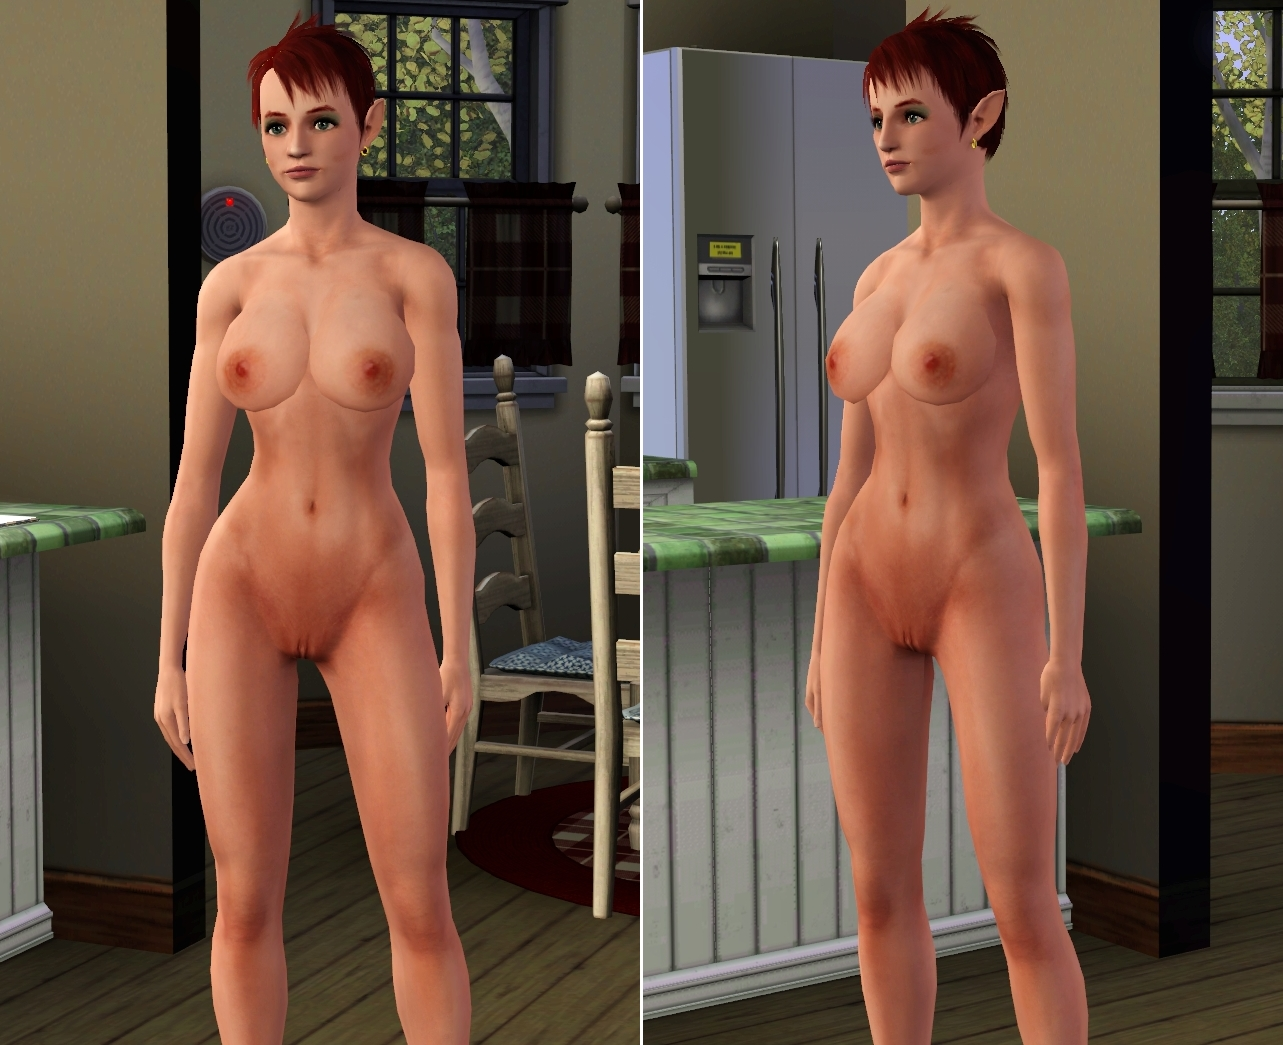 Naked in sims naked in skins, vagina defloration cum sex